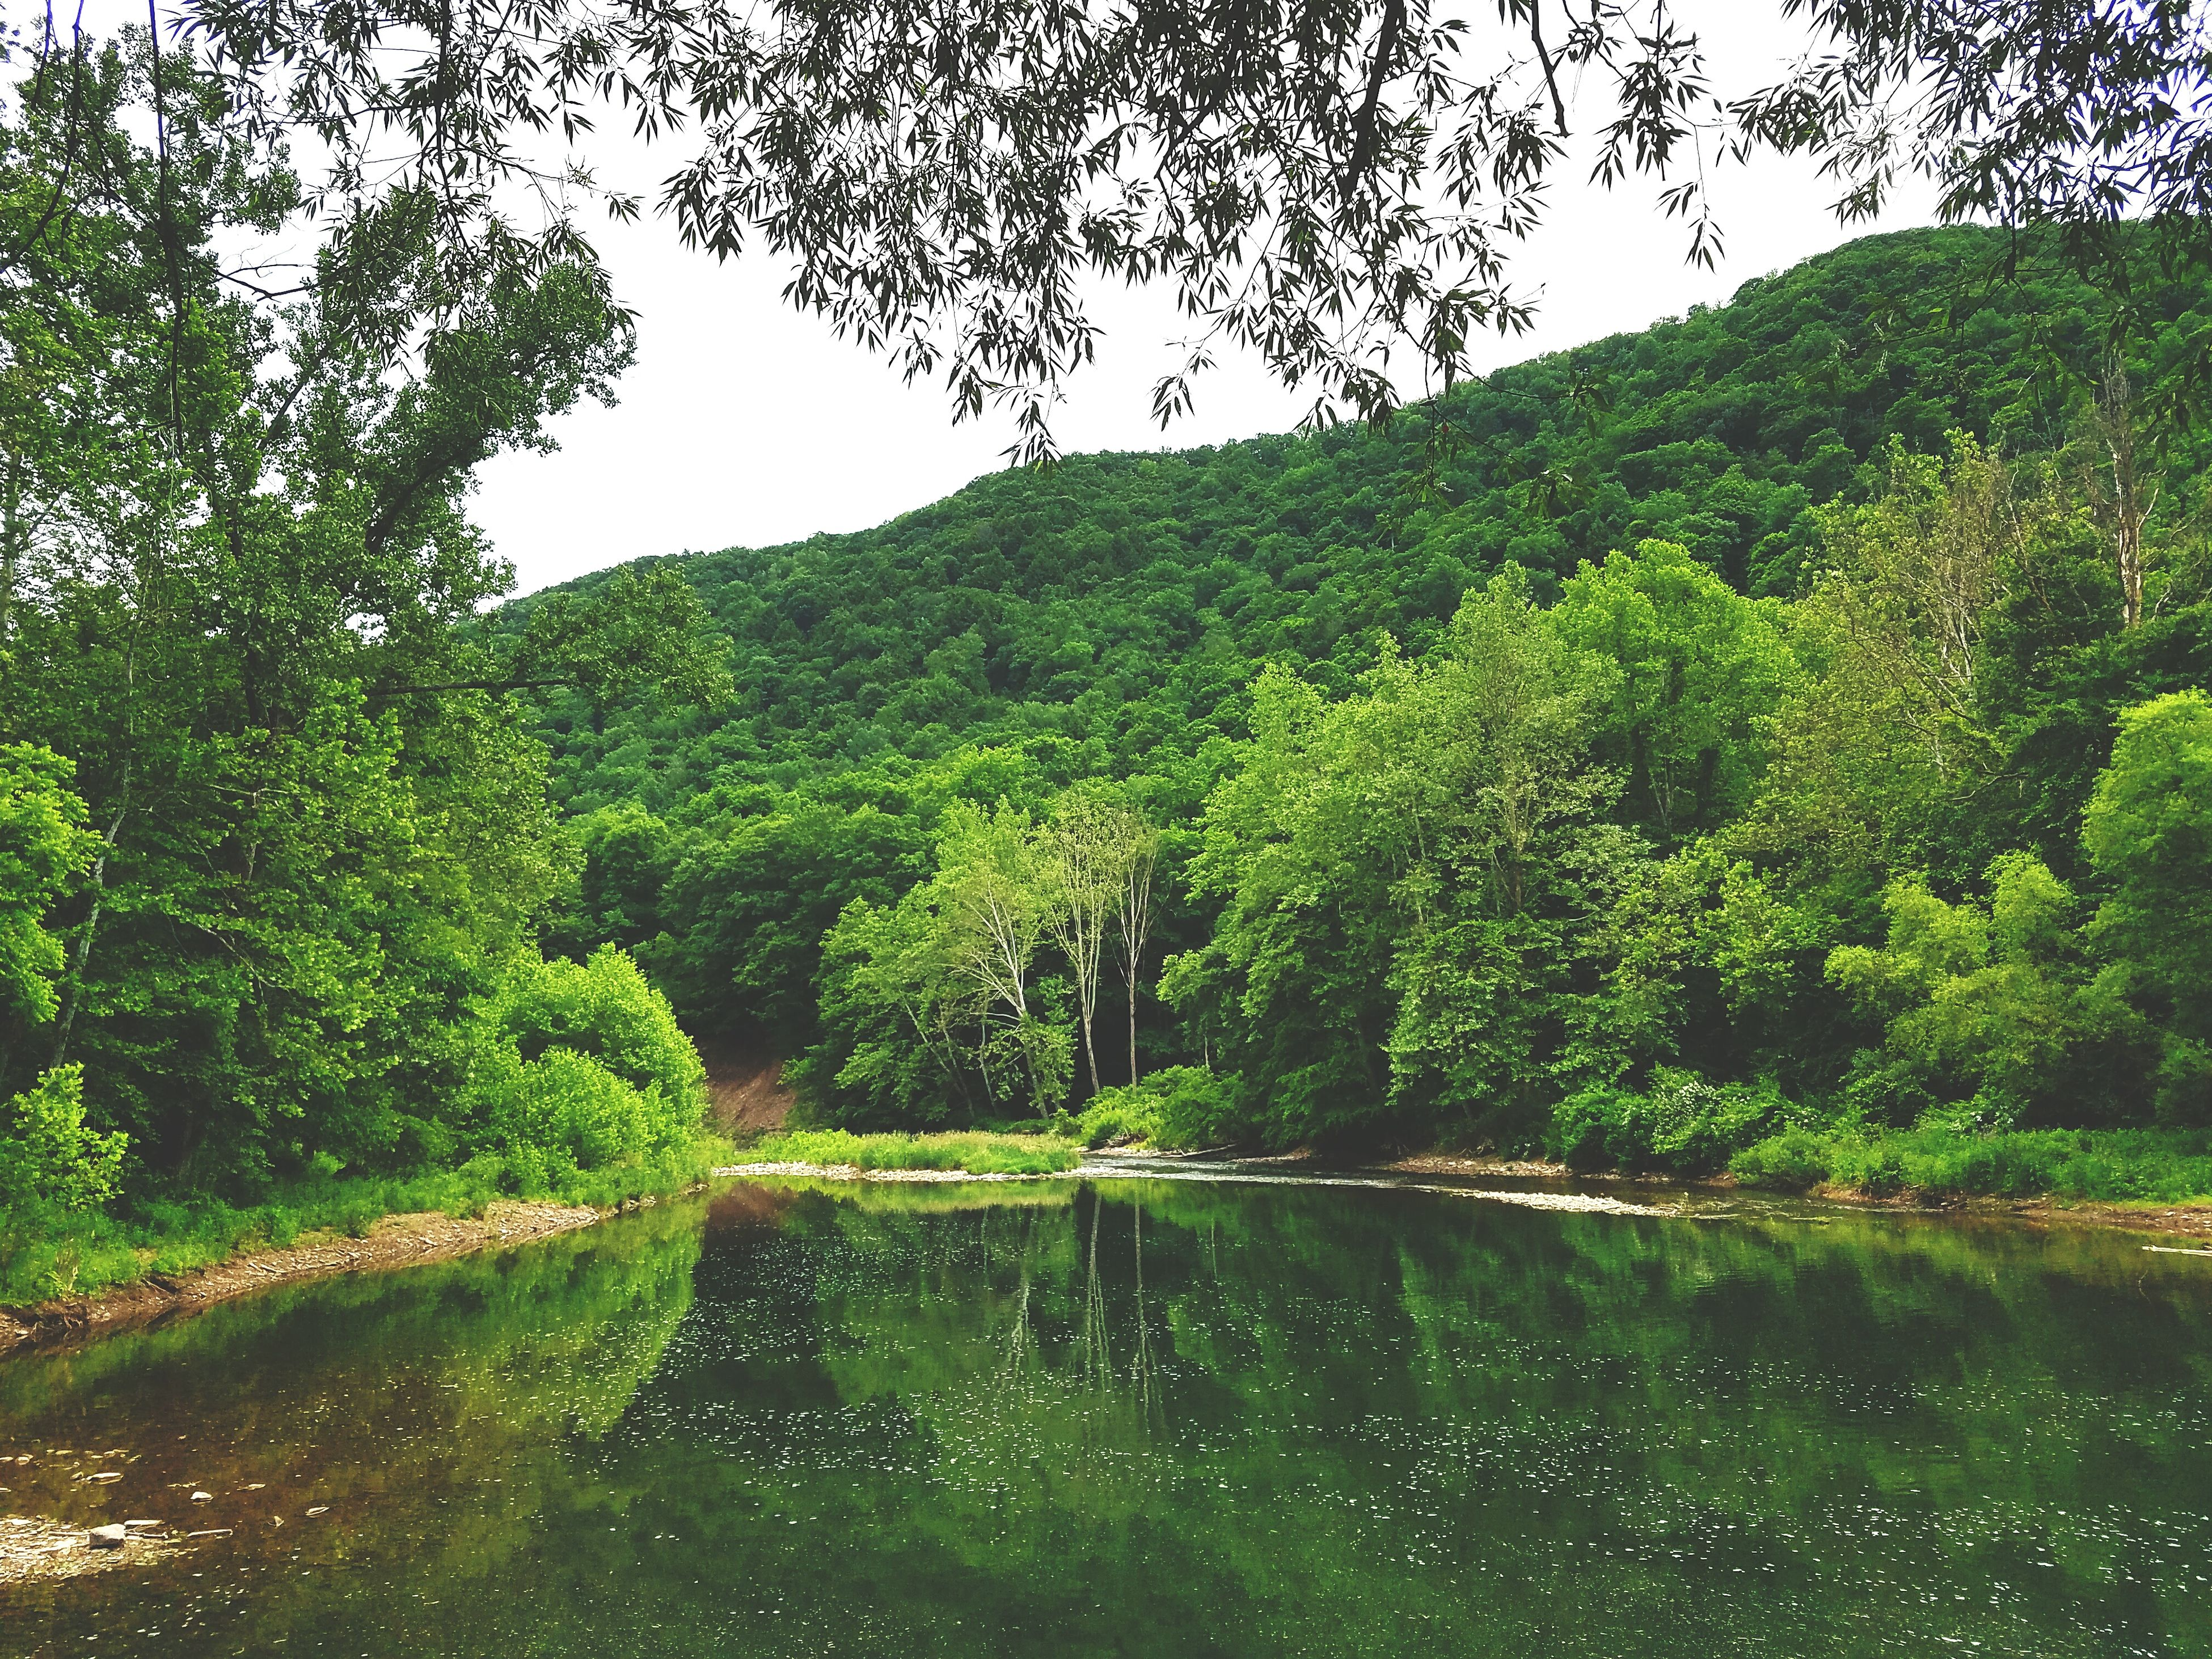 tree, water, tranquility, tranquil scene, green color, beauty in nature, growth, scenics, nature, waterfront, lush foliage, river, reflection, clear sky, lake, green, idyllic, forest, day, mountain